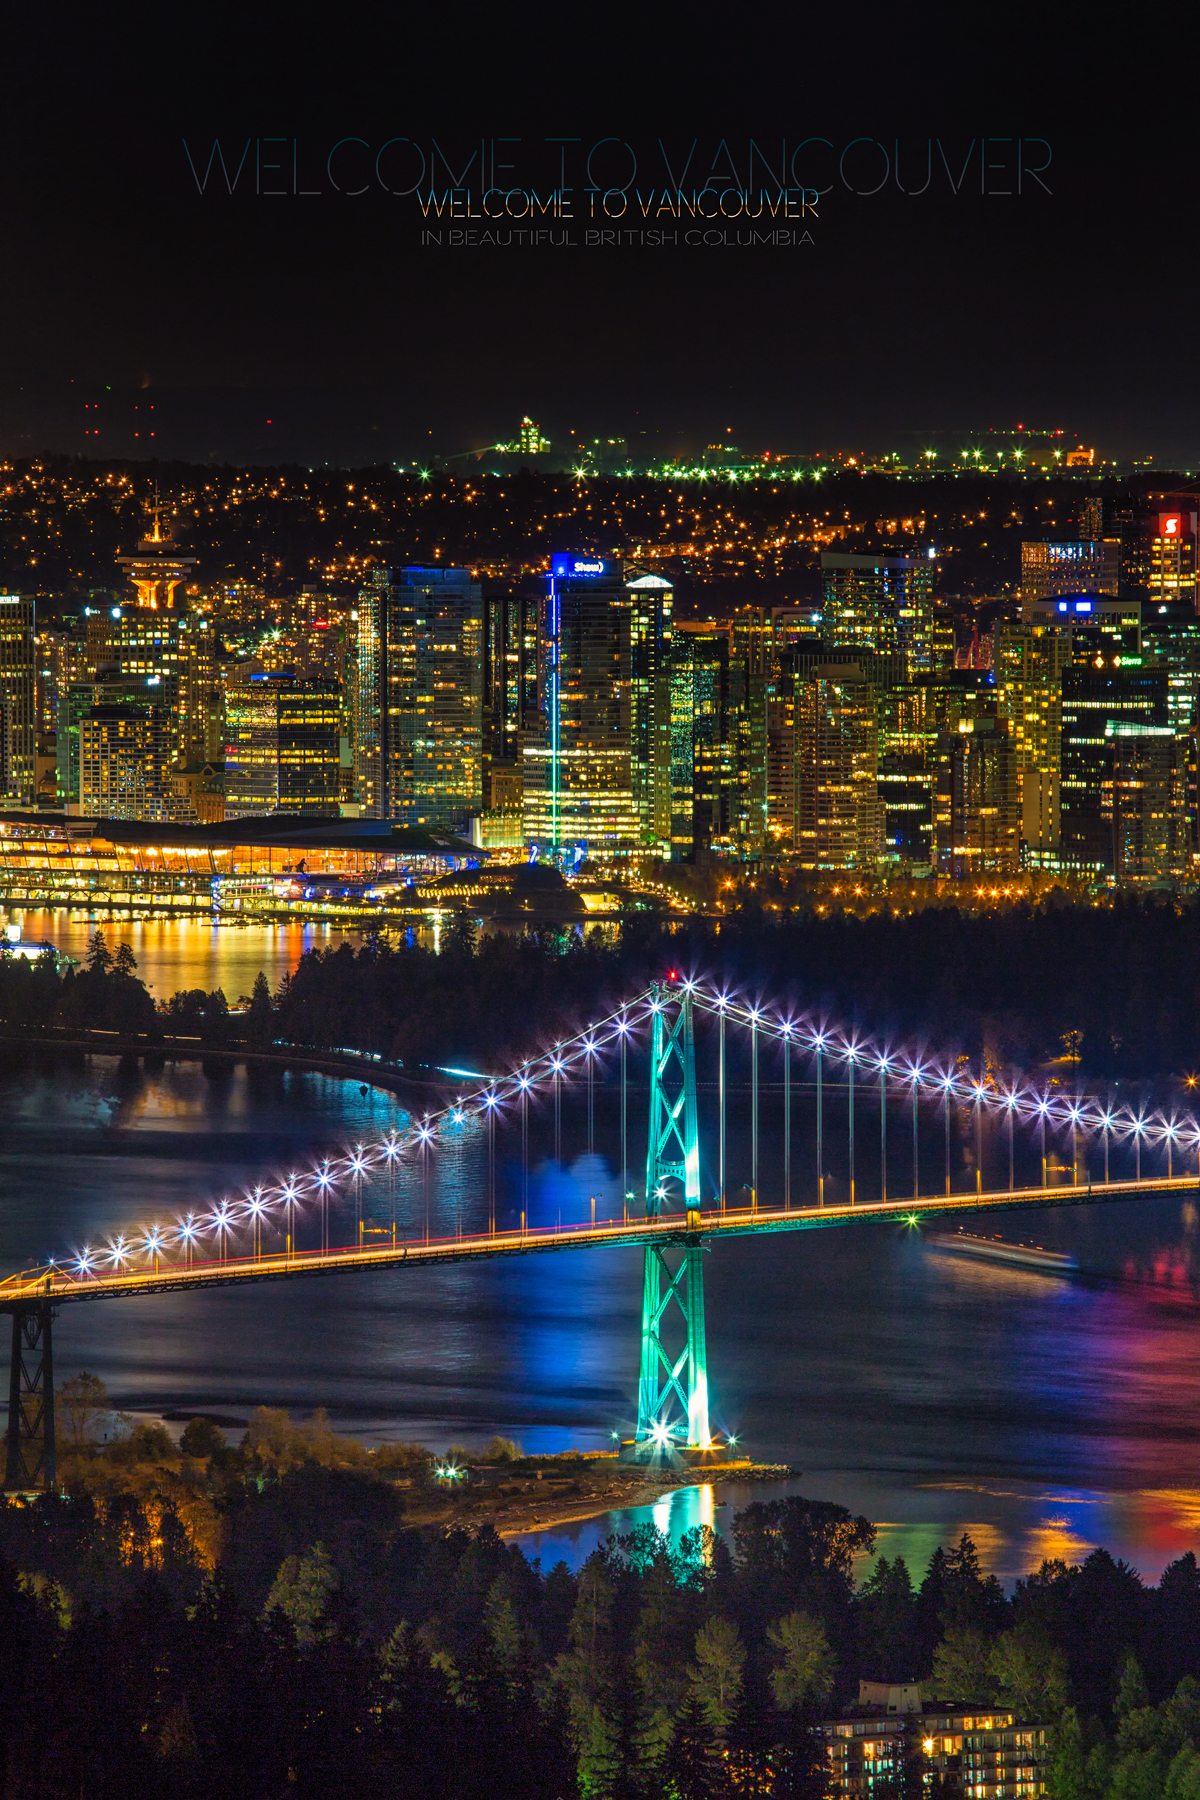 Downtown Vancouver at Night via J5MM.com